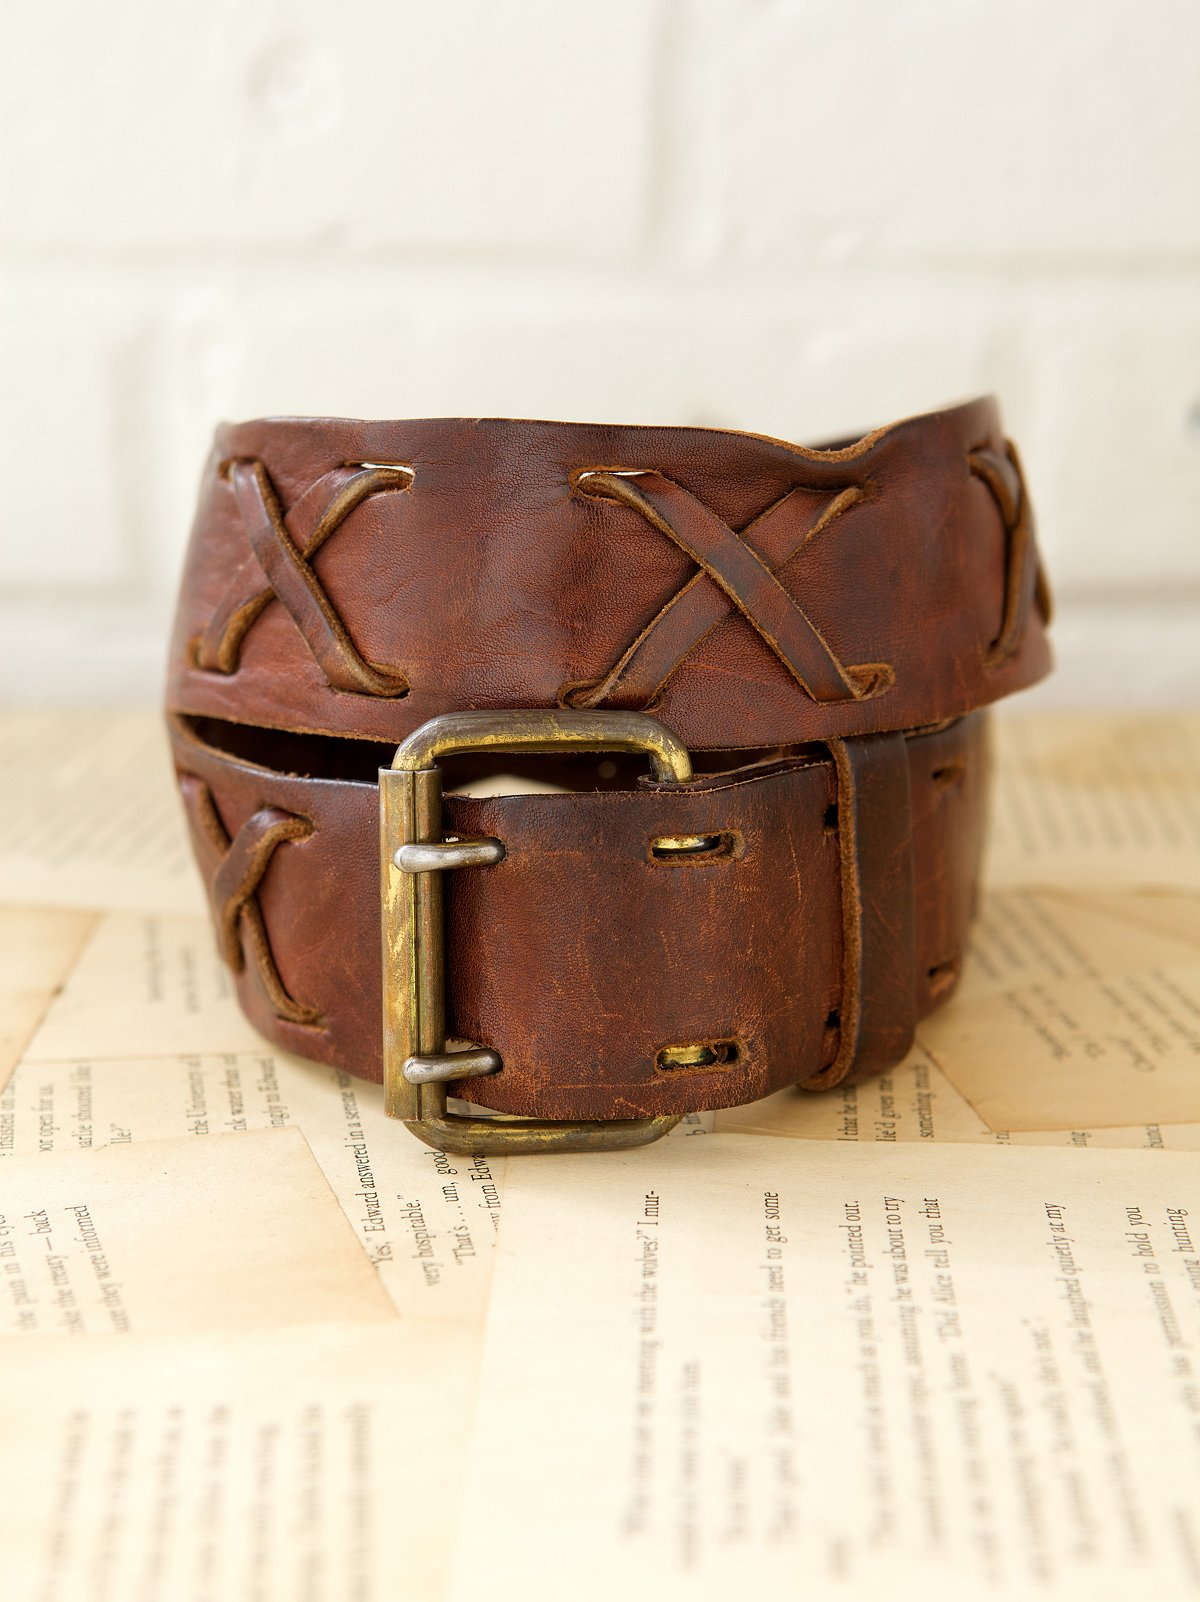 Vintage 1970s Hippie Treasure Belt